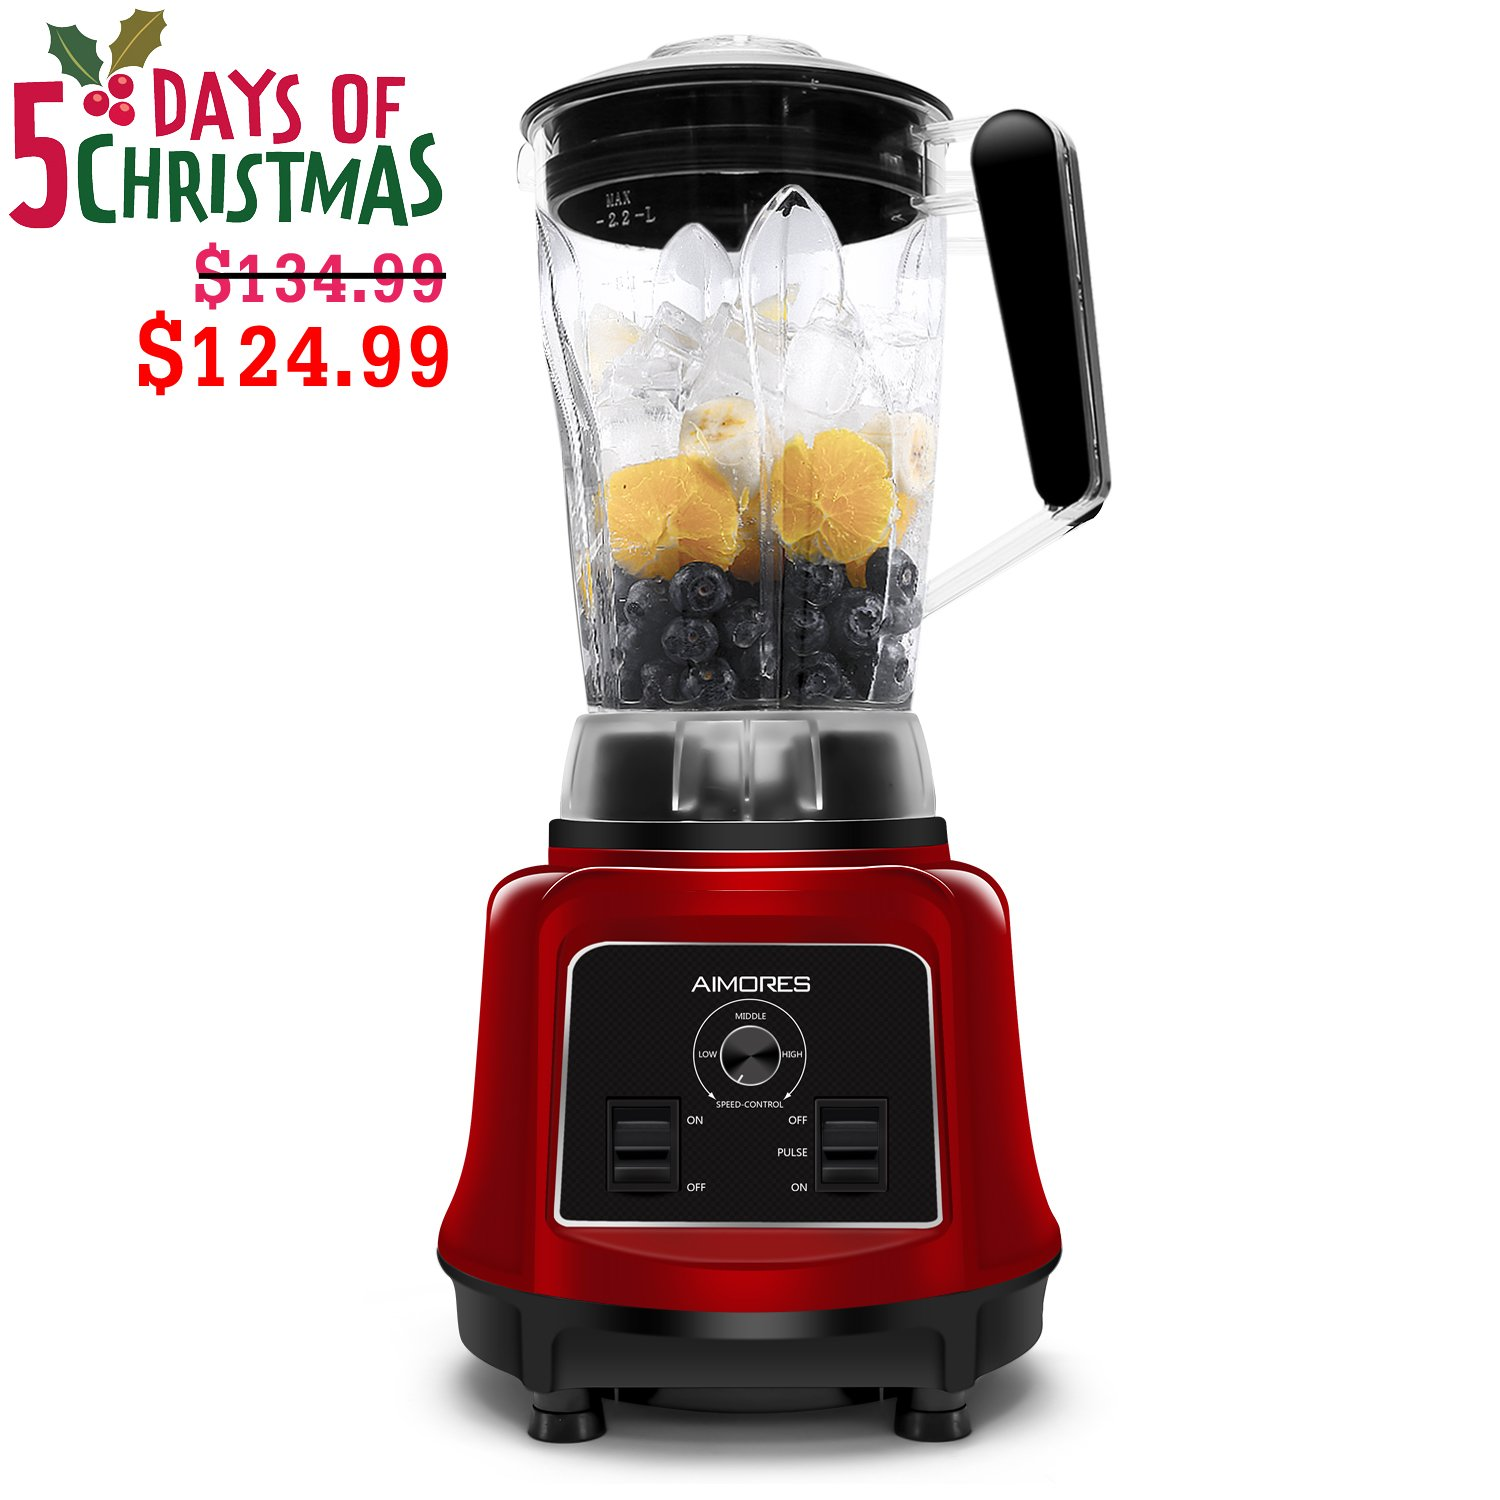 Commercial Blender Aimores for Smoothie | 750z. High Speed Juicer, Ice Cream Maker | Optimized 6 Sharp Blades | Auto Clean & Simple Control | w/ Recipe & Tamper | ETL & FDA Certified (Red)